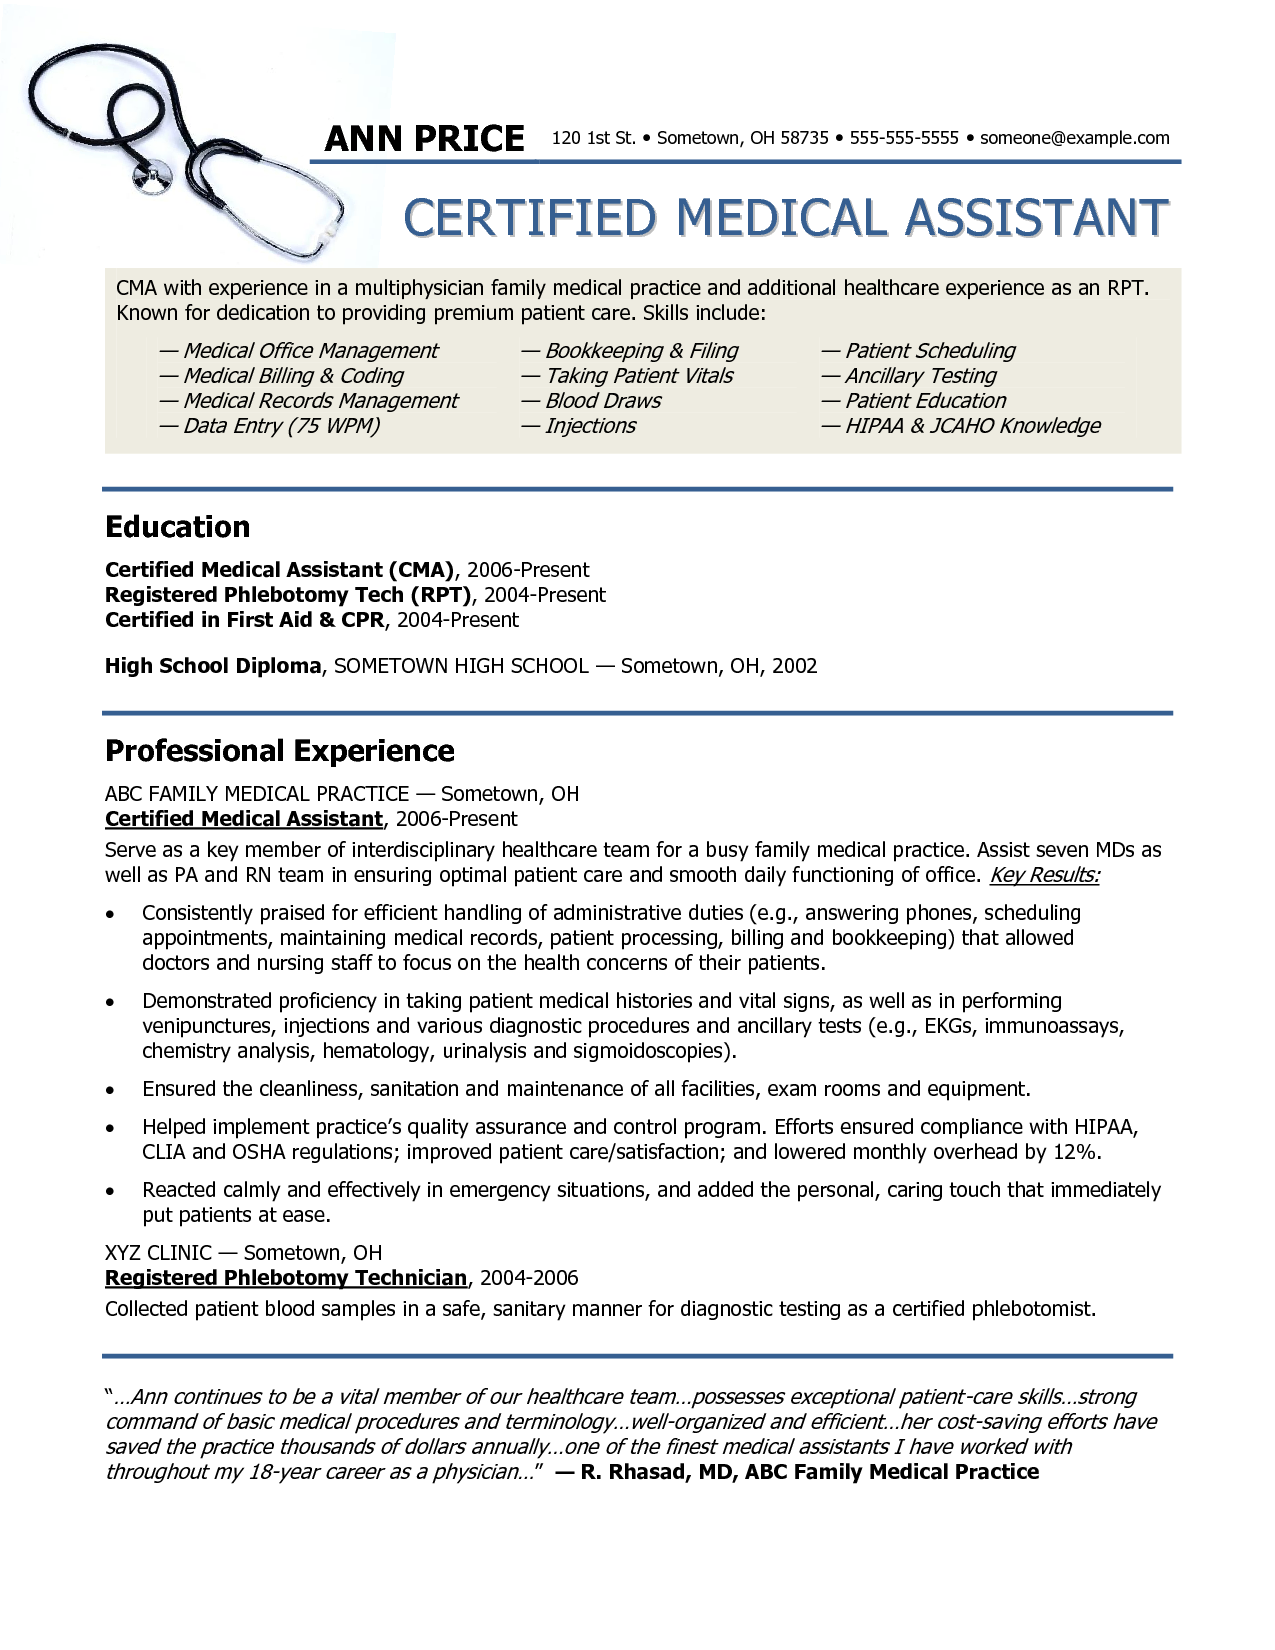 Resume Examples Example Of Medical Assistant Resume Regular Medical  Assistantu2026  Medical Resume Examples